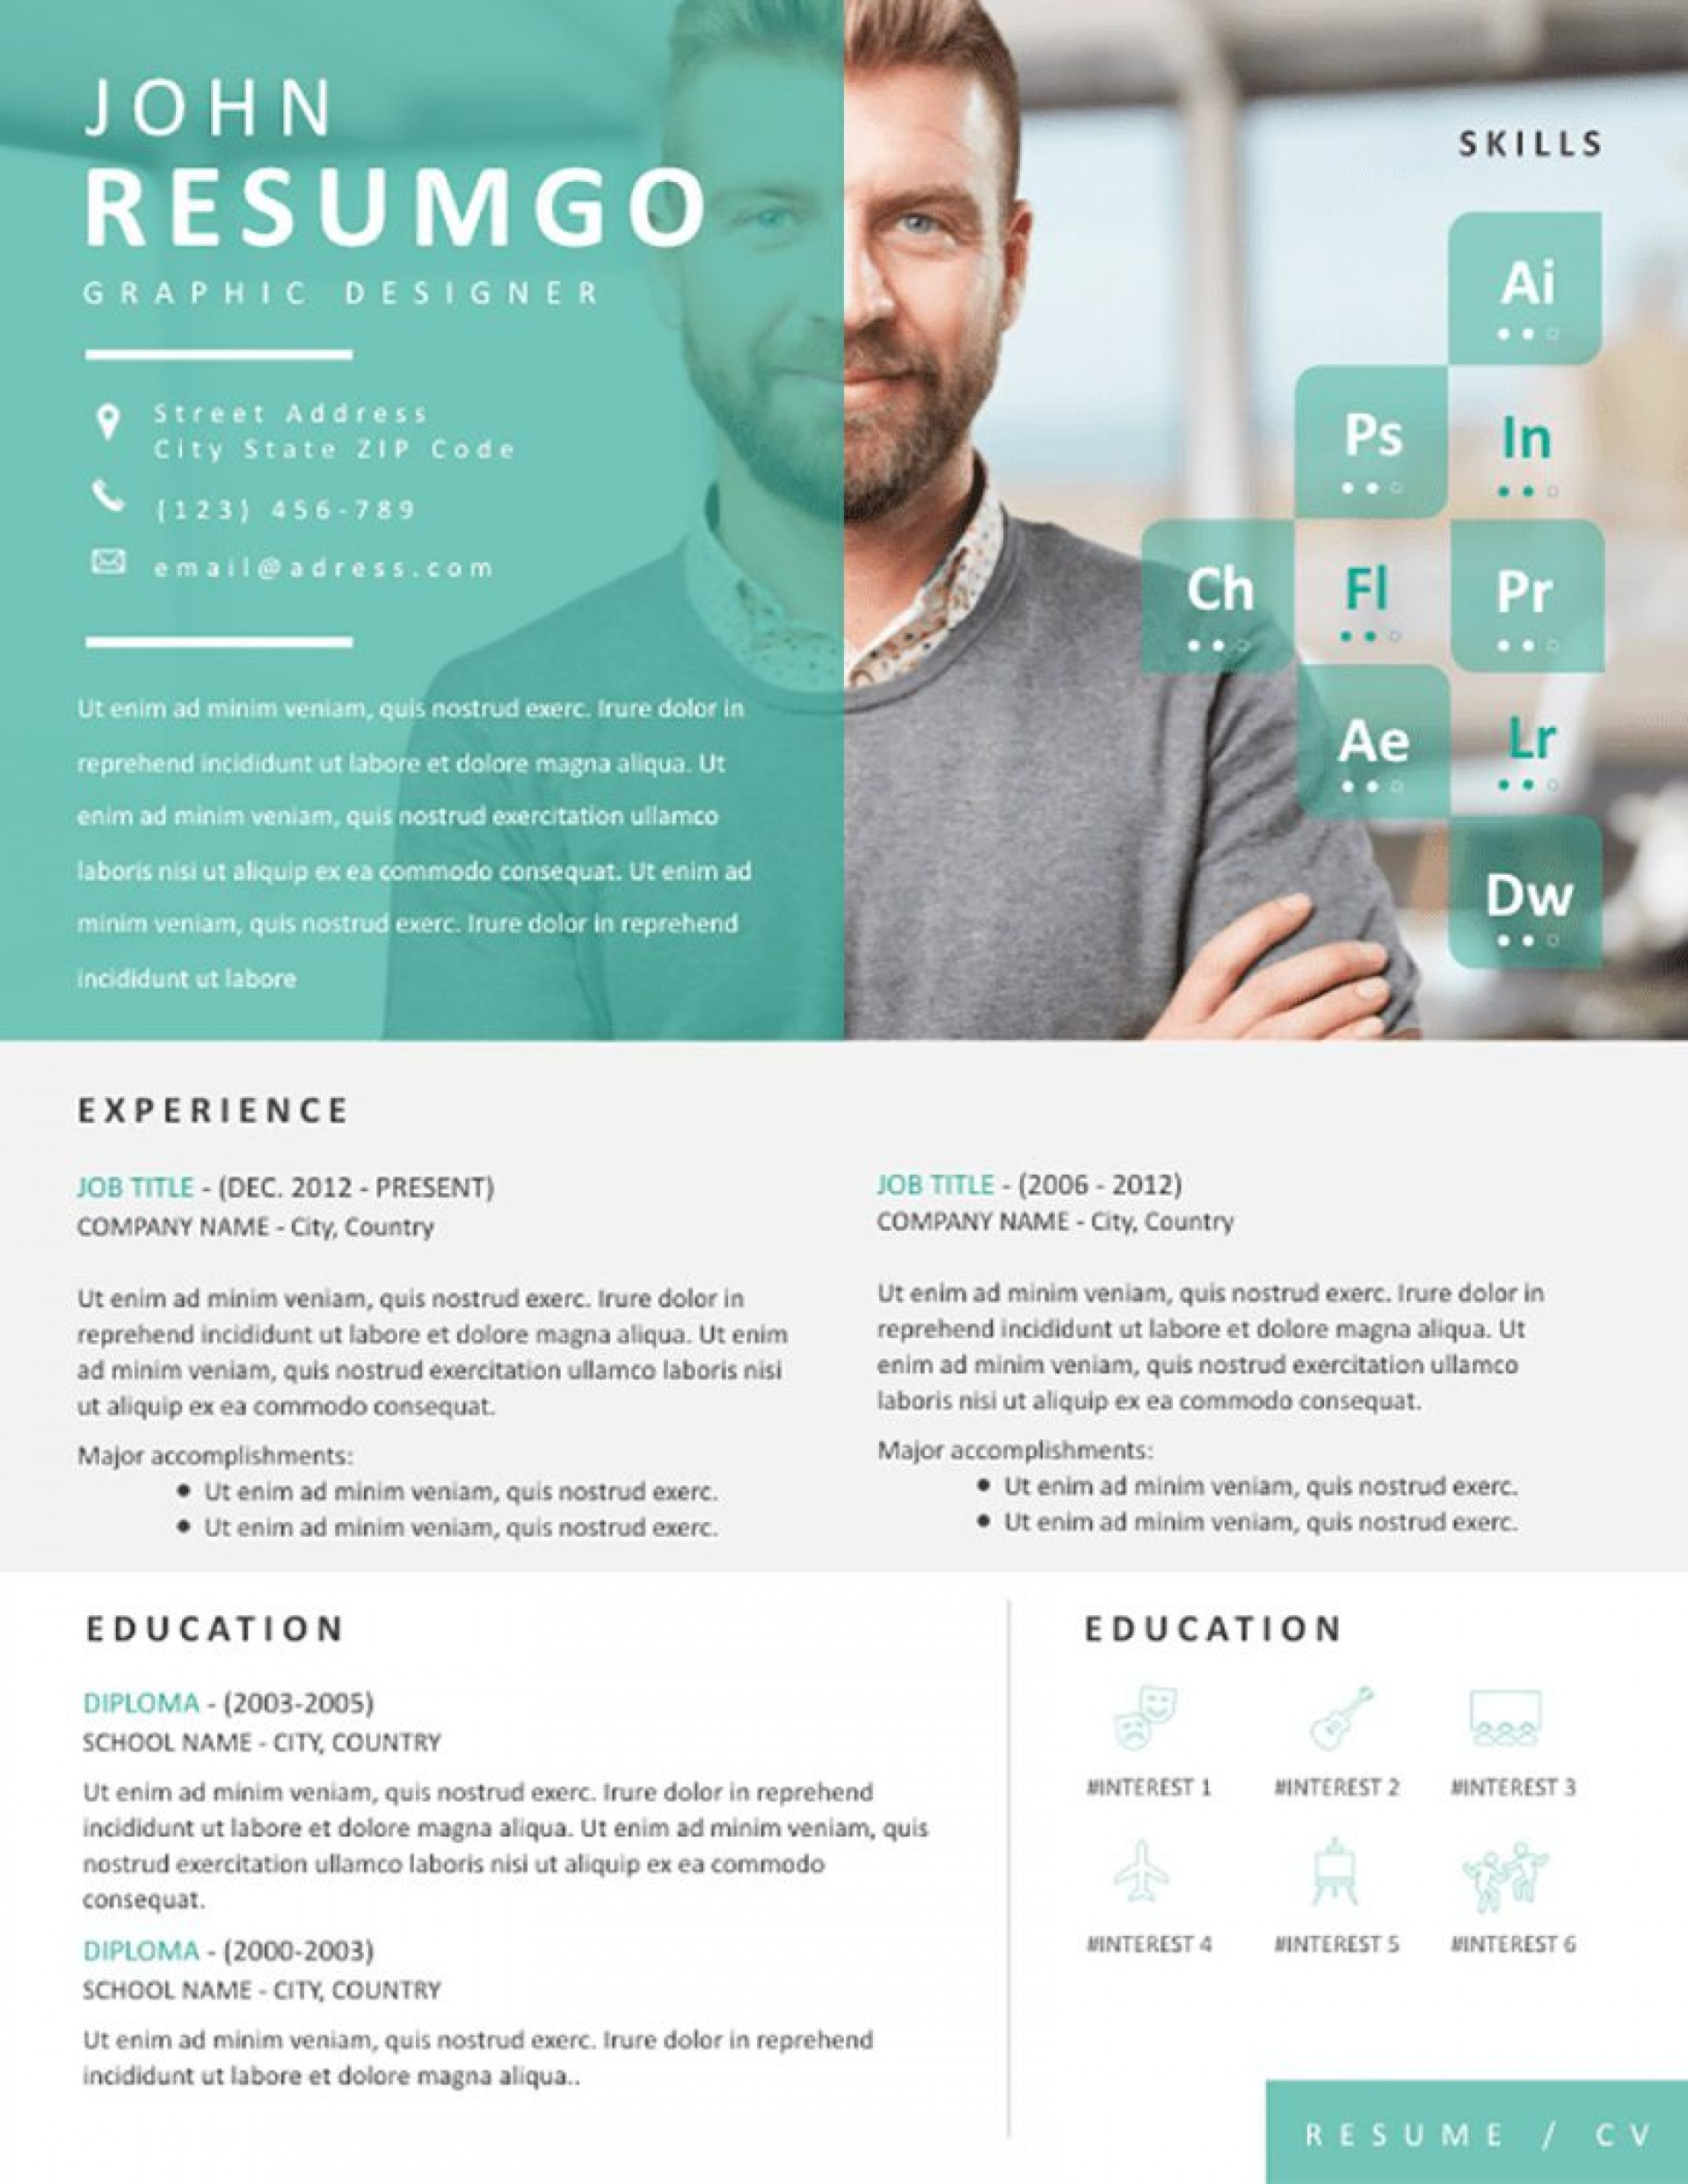 002 Stupendou Eye Catching Resume Template Photo  Microsoft Word Free Download Most1920